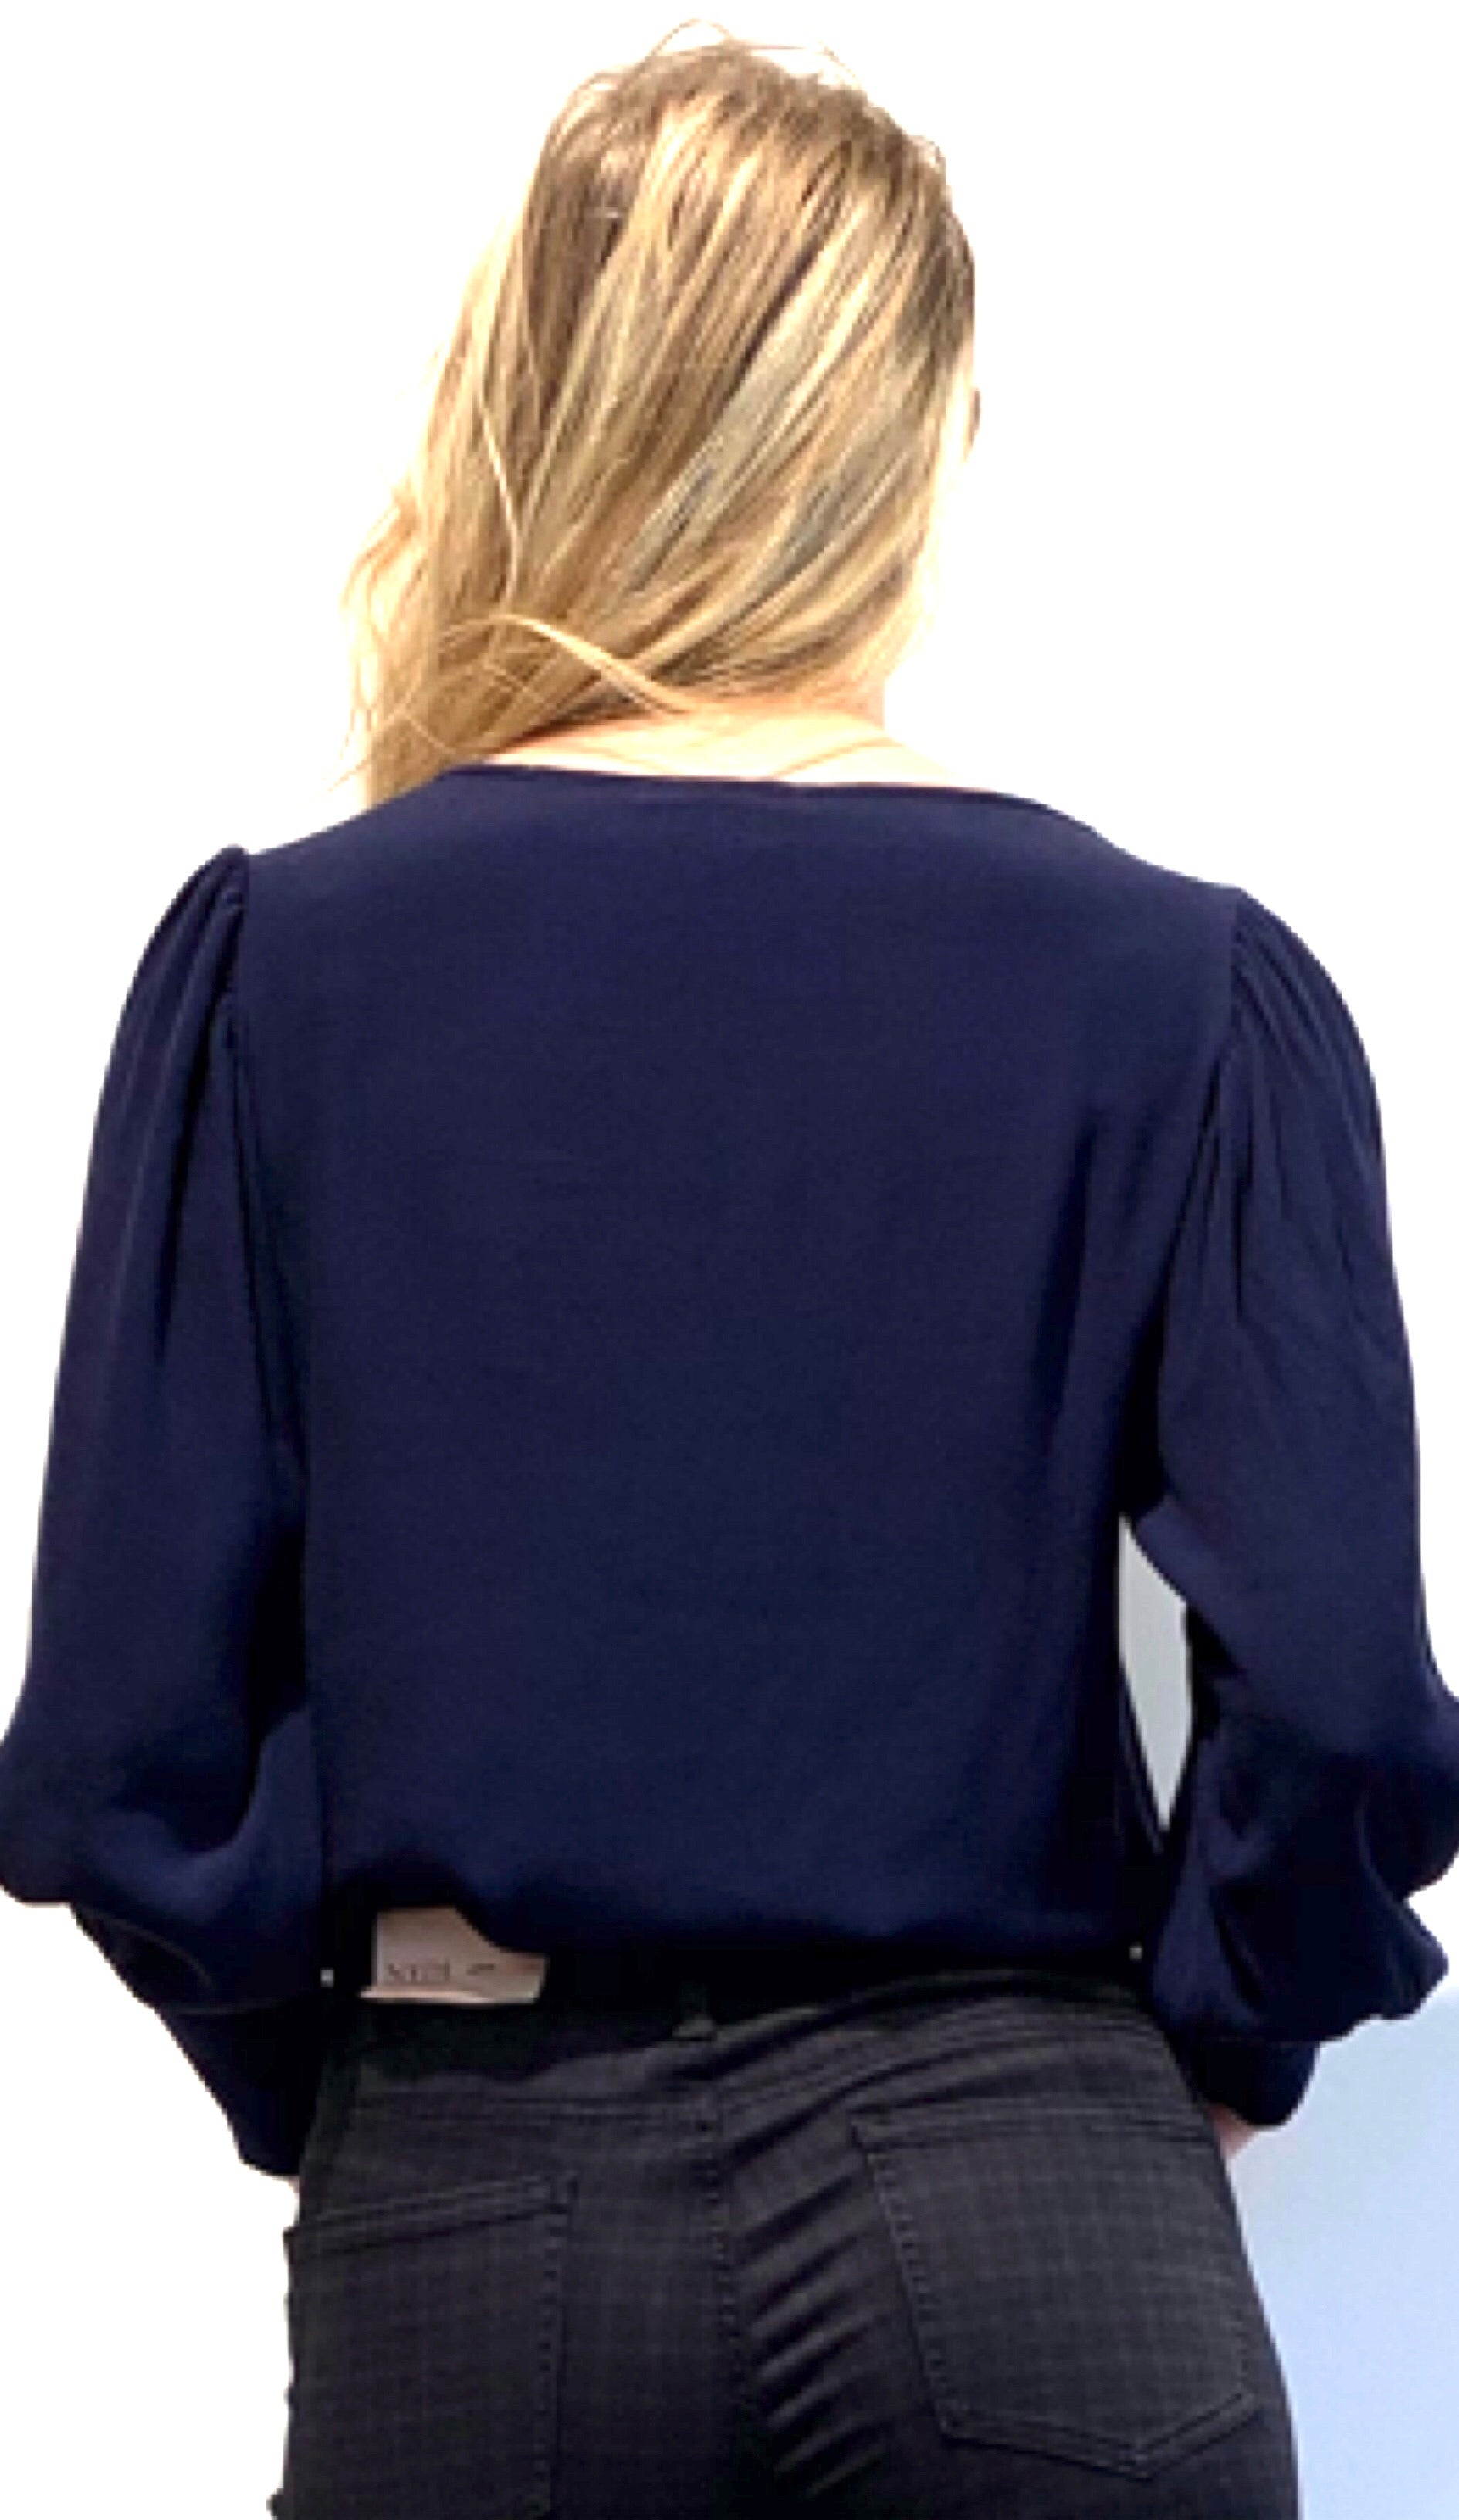 Blouse puff sleeve navy